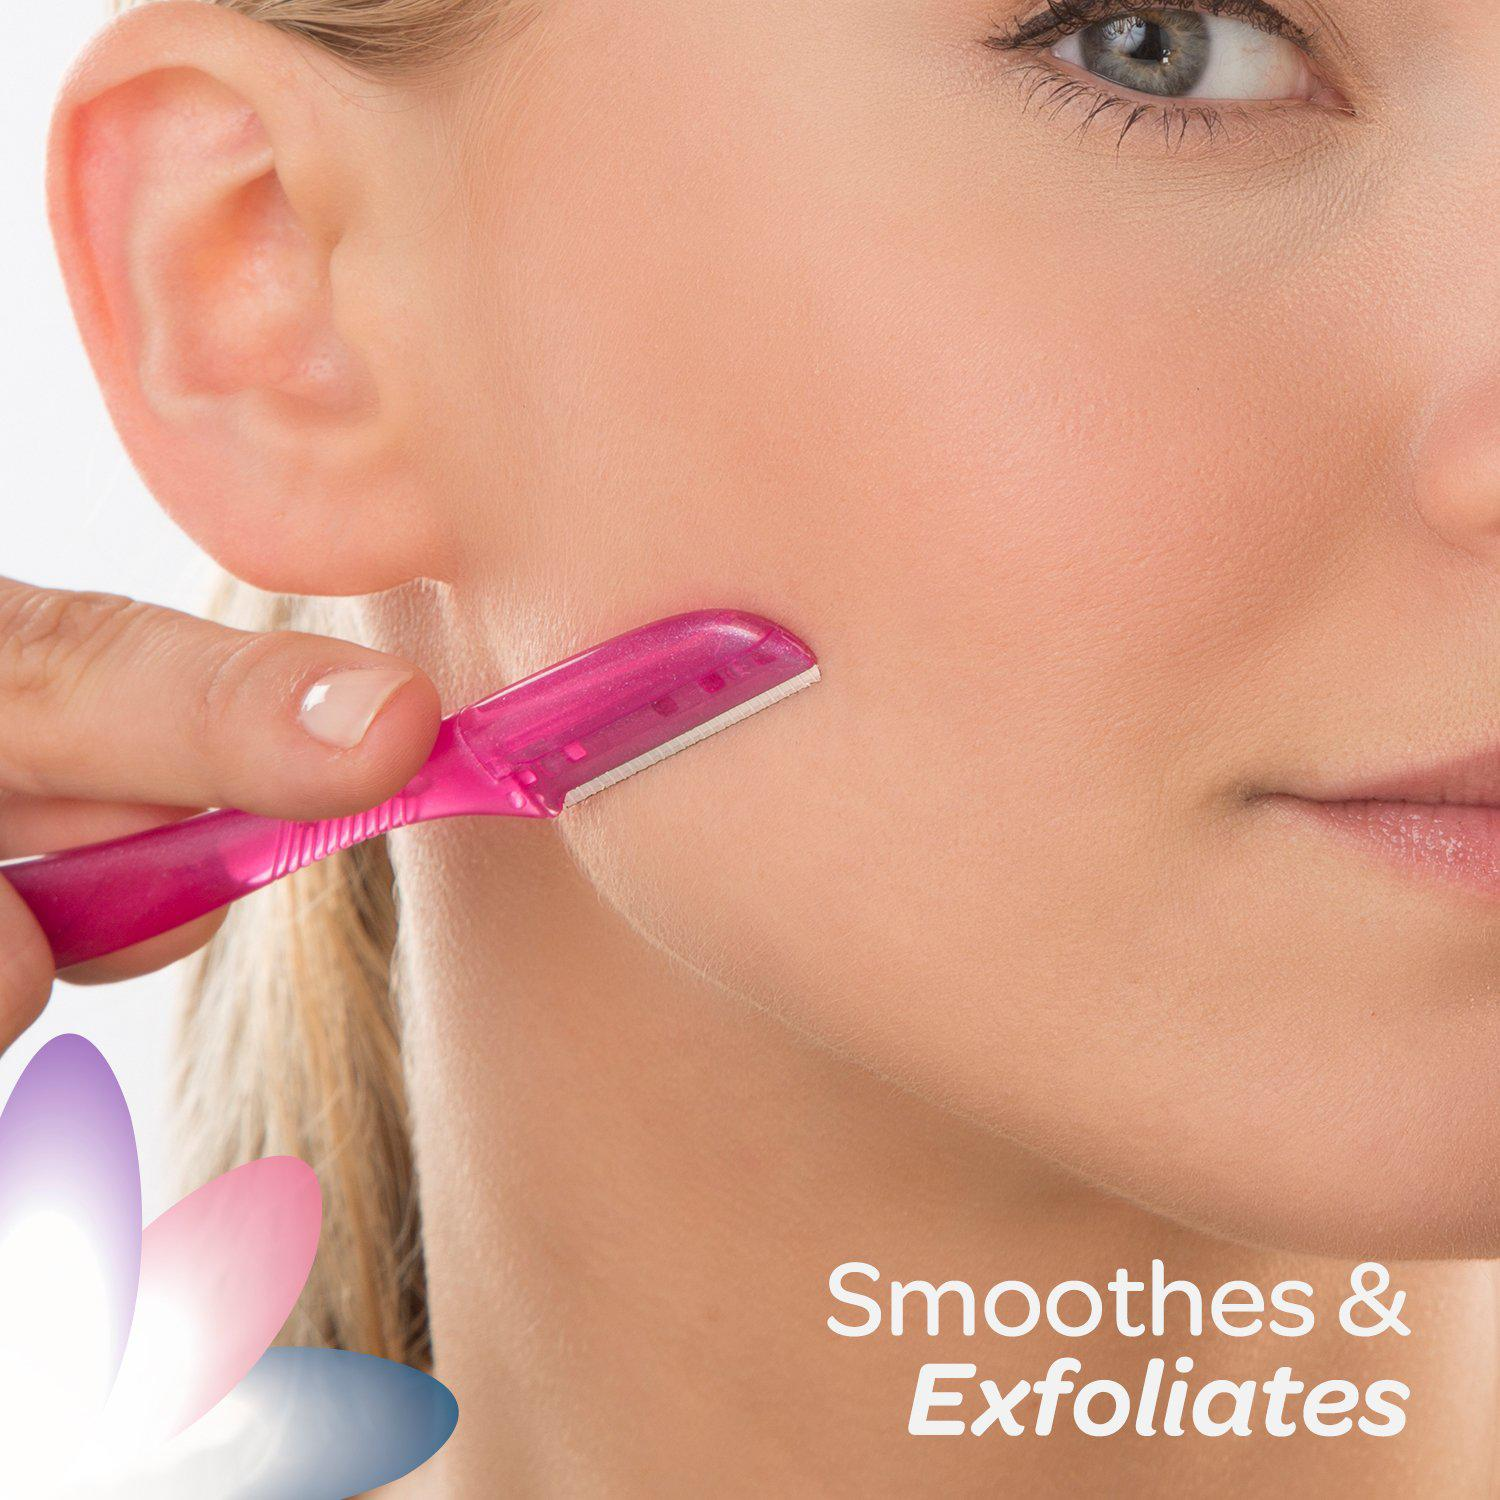 Dermaplaning at Unique Beauty 4 U, Brentwood